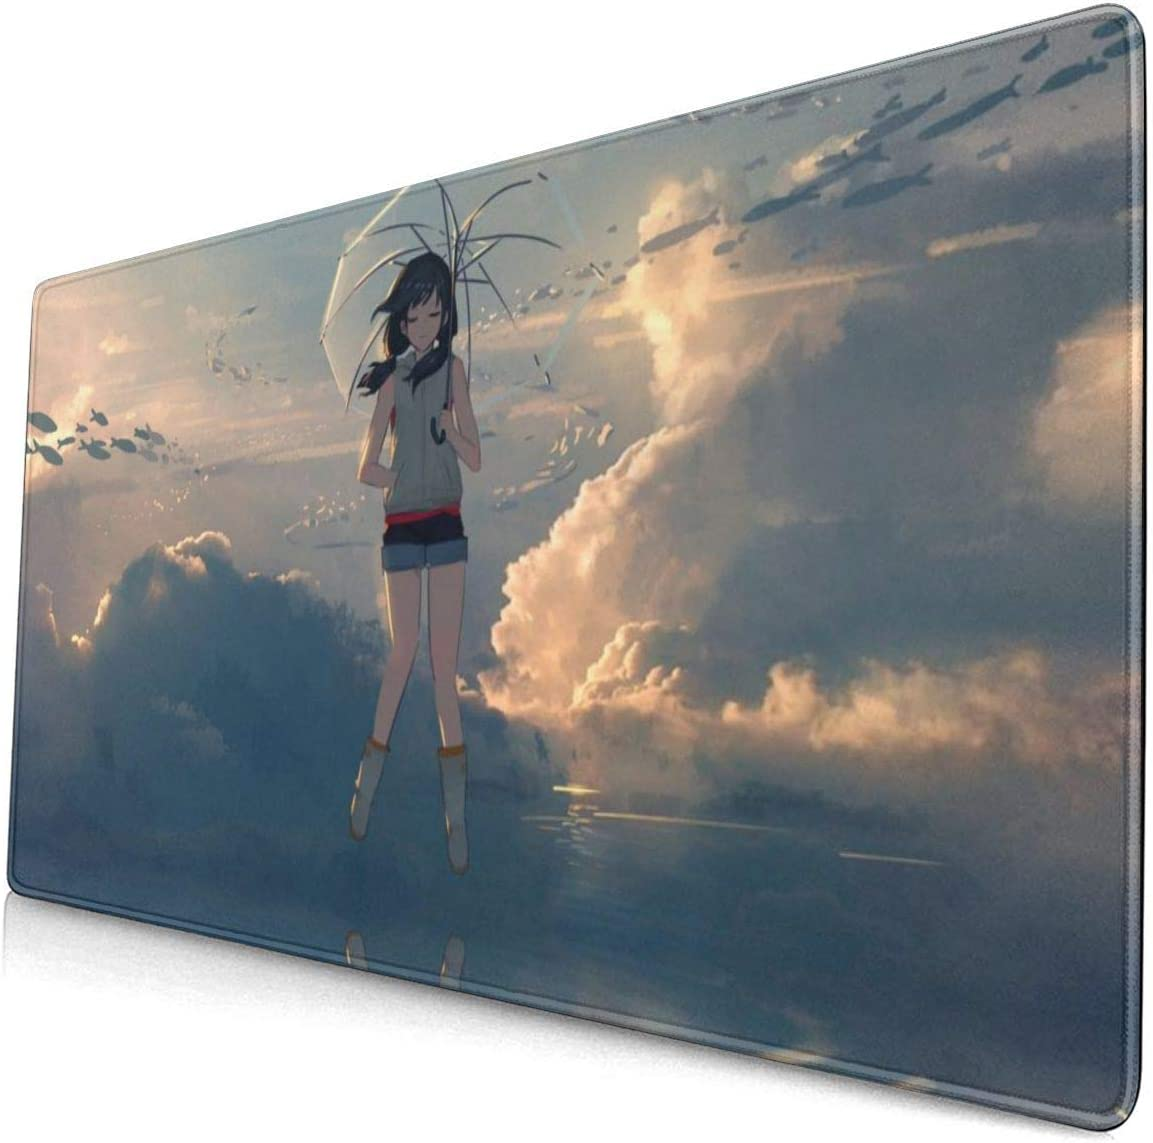 Amazon Com Makoto Shinkai Anime Movie Weathering With You Tenki No Ko 15 8x29 5 In Large Gaming Mouse Pad Desk Mat Long Non Slip Rubber Stitched Edges Office Products